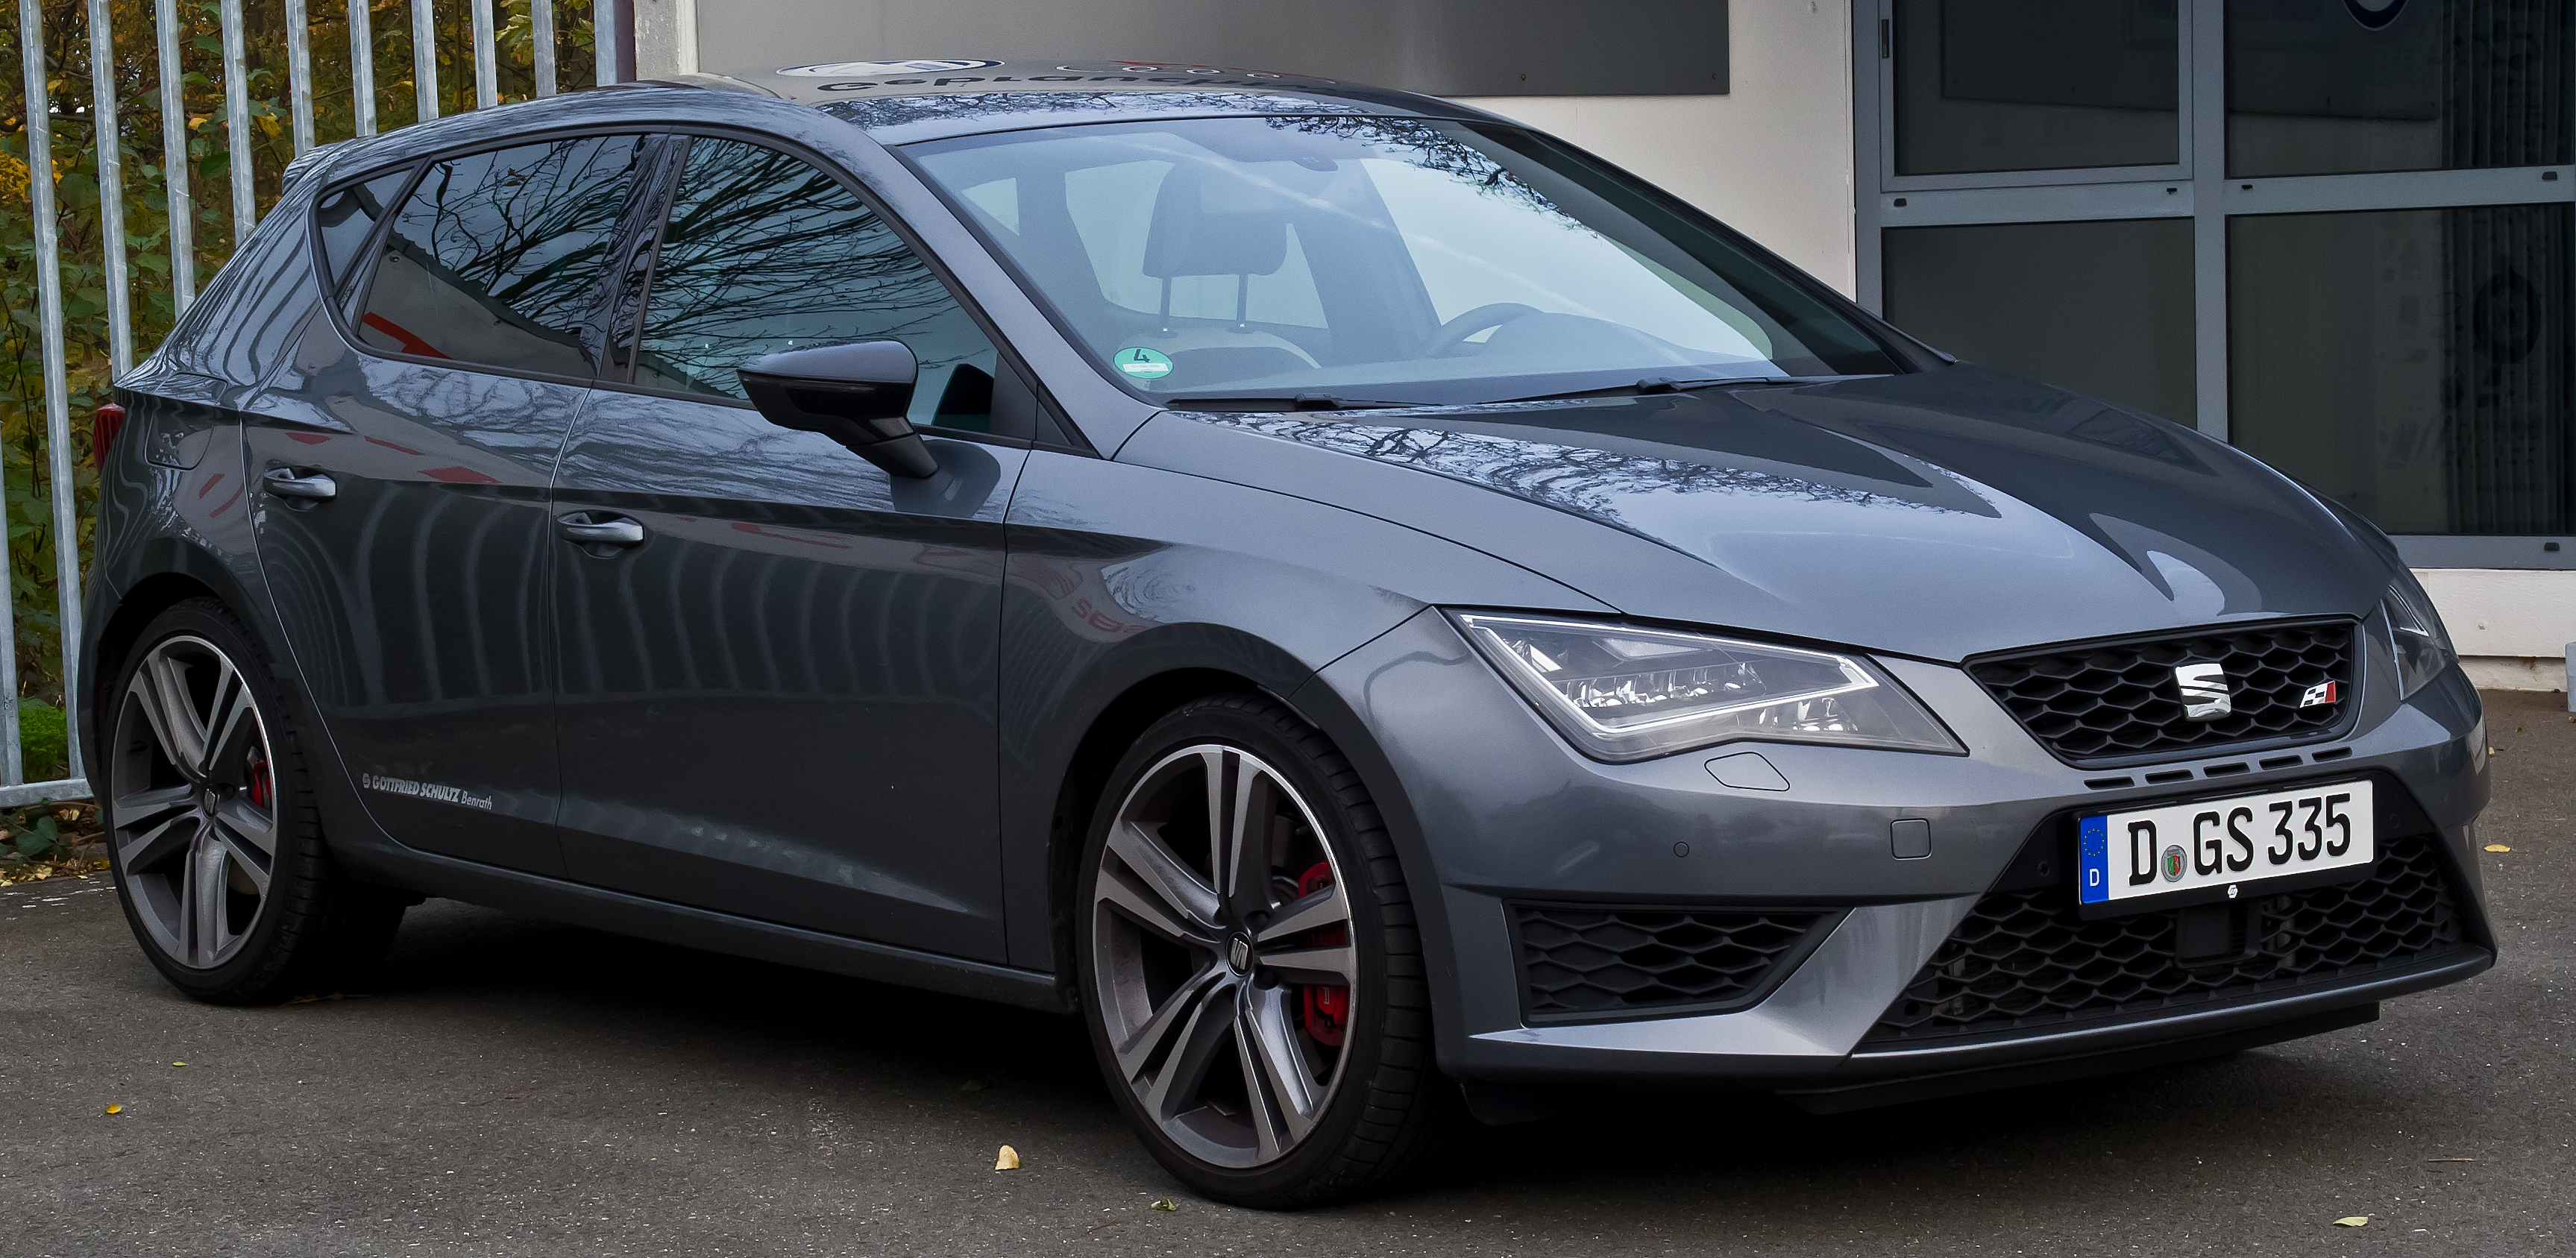 plik seat leon cupra 280 iii frontansicht 9 november 2014 d wikipedia. Black Bedroom Furniture Sets. Home Design Ideas